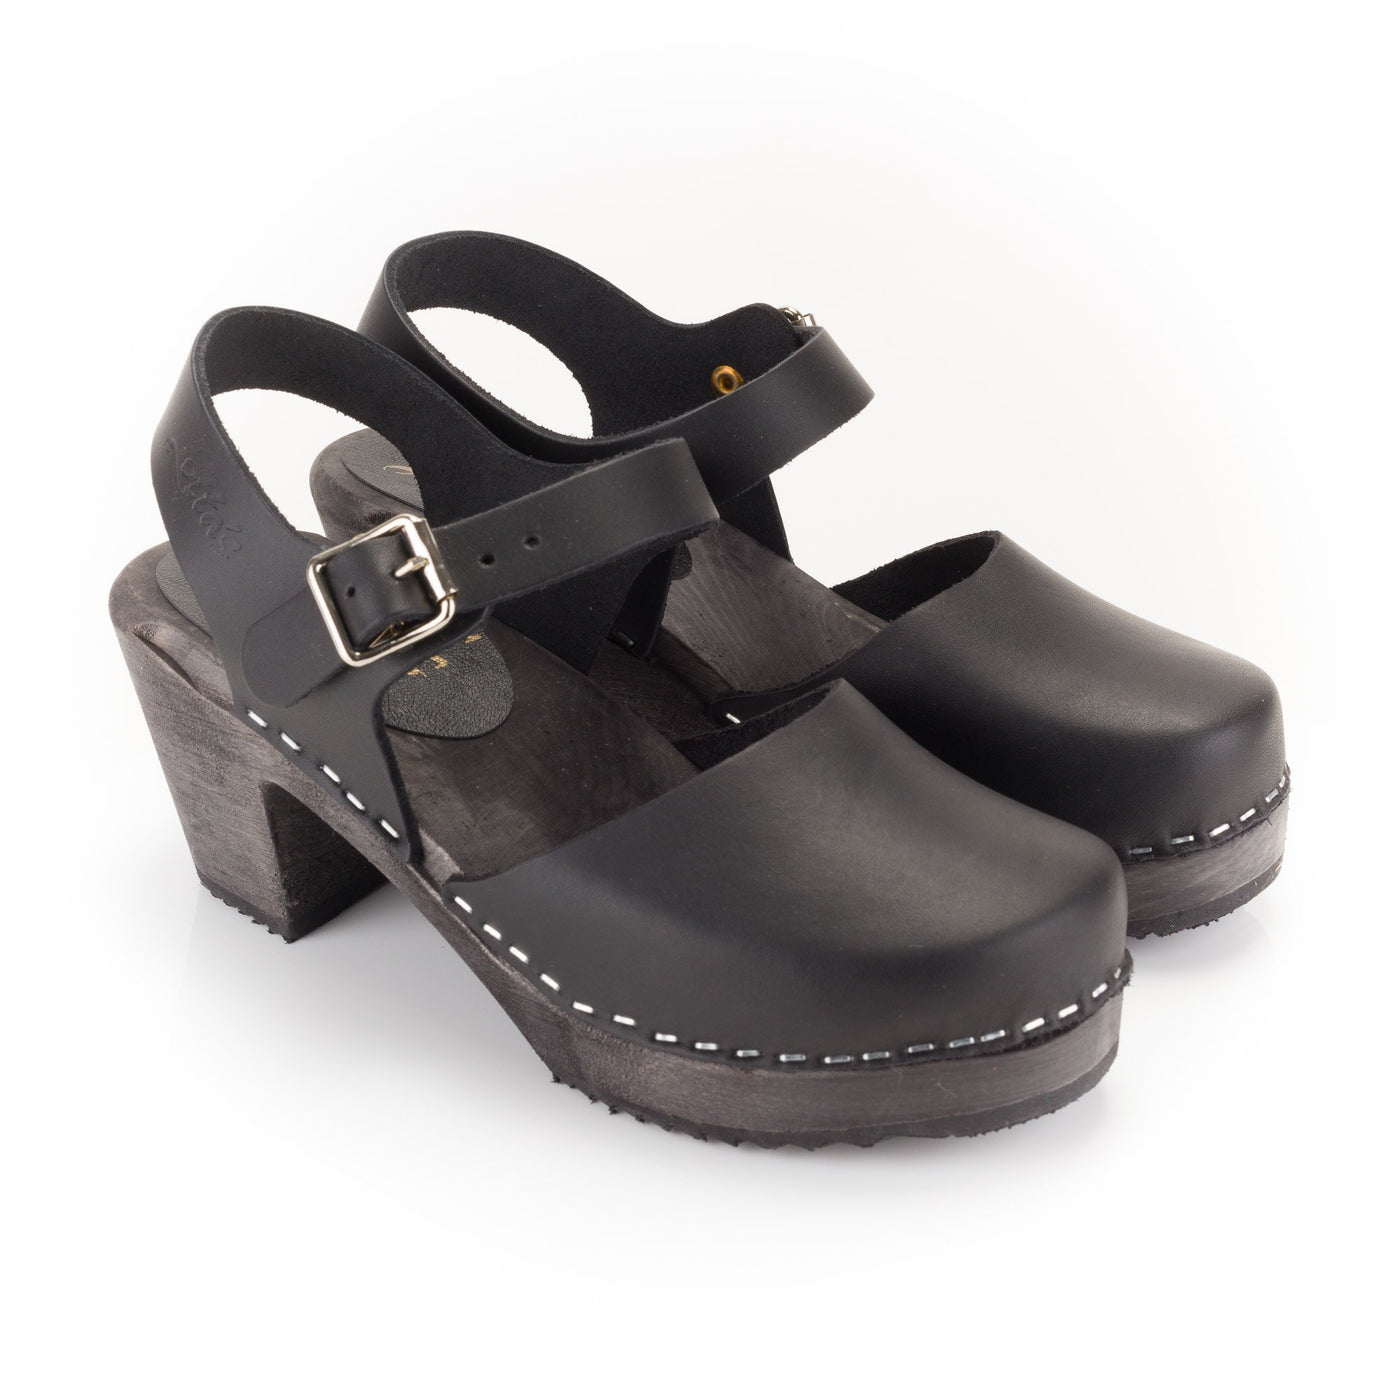 Black Retro Wooden Clogs by Lotta from Stockholm at Dollydagger